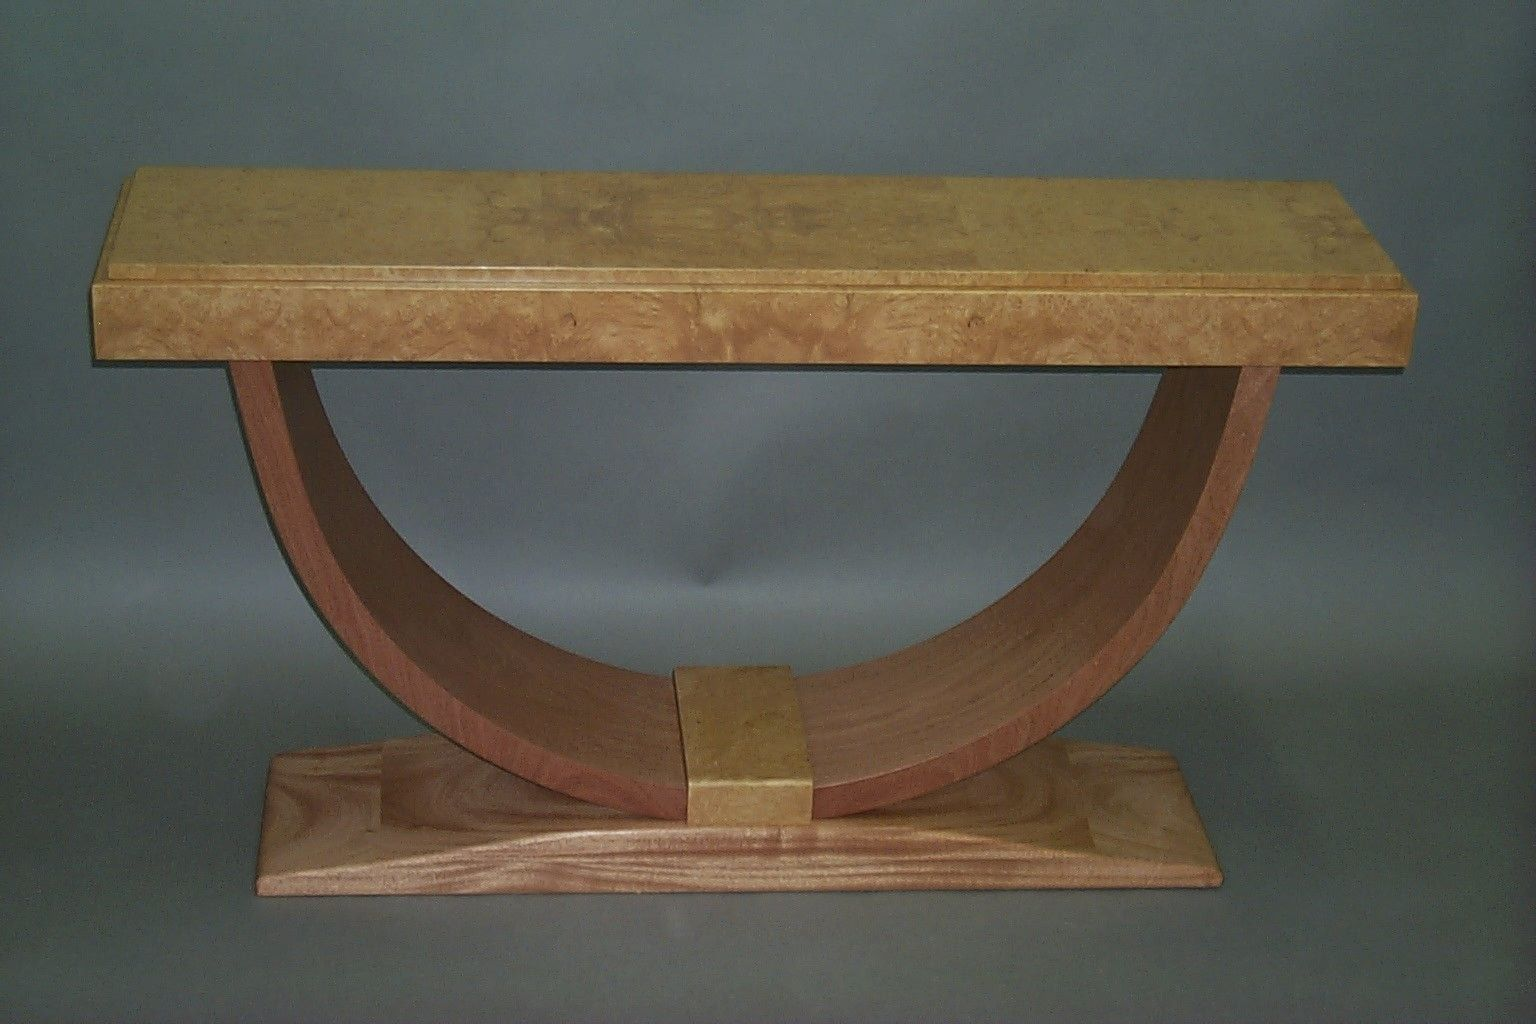 Hand crafted french art deco console table by matthew sharratt custom made french art deco console table geotapseo Image collections